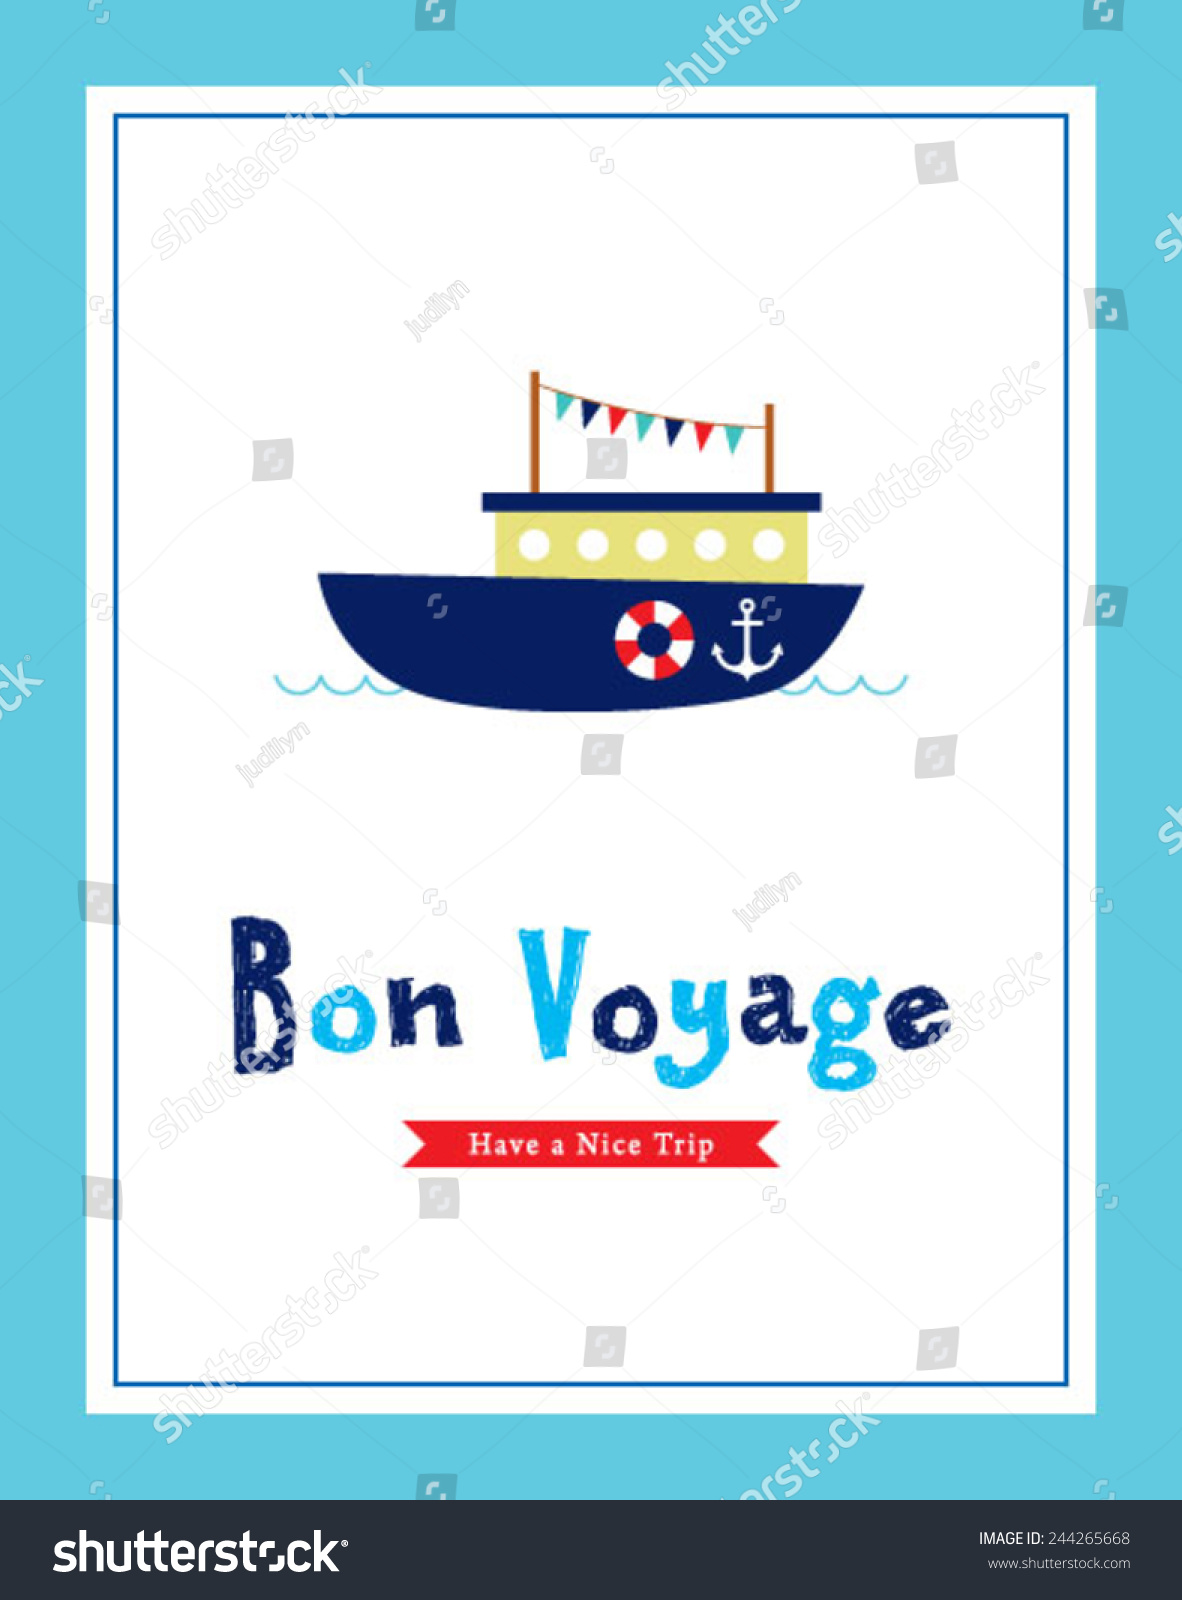 Bon voyage safety journey greeting card stock vector 2018 bon voyage safety journey greeting card with boat graphic m4hsunfo